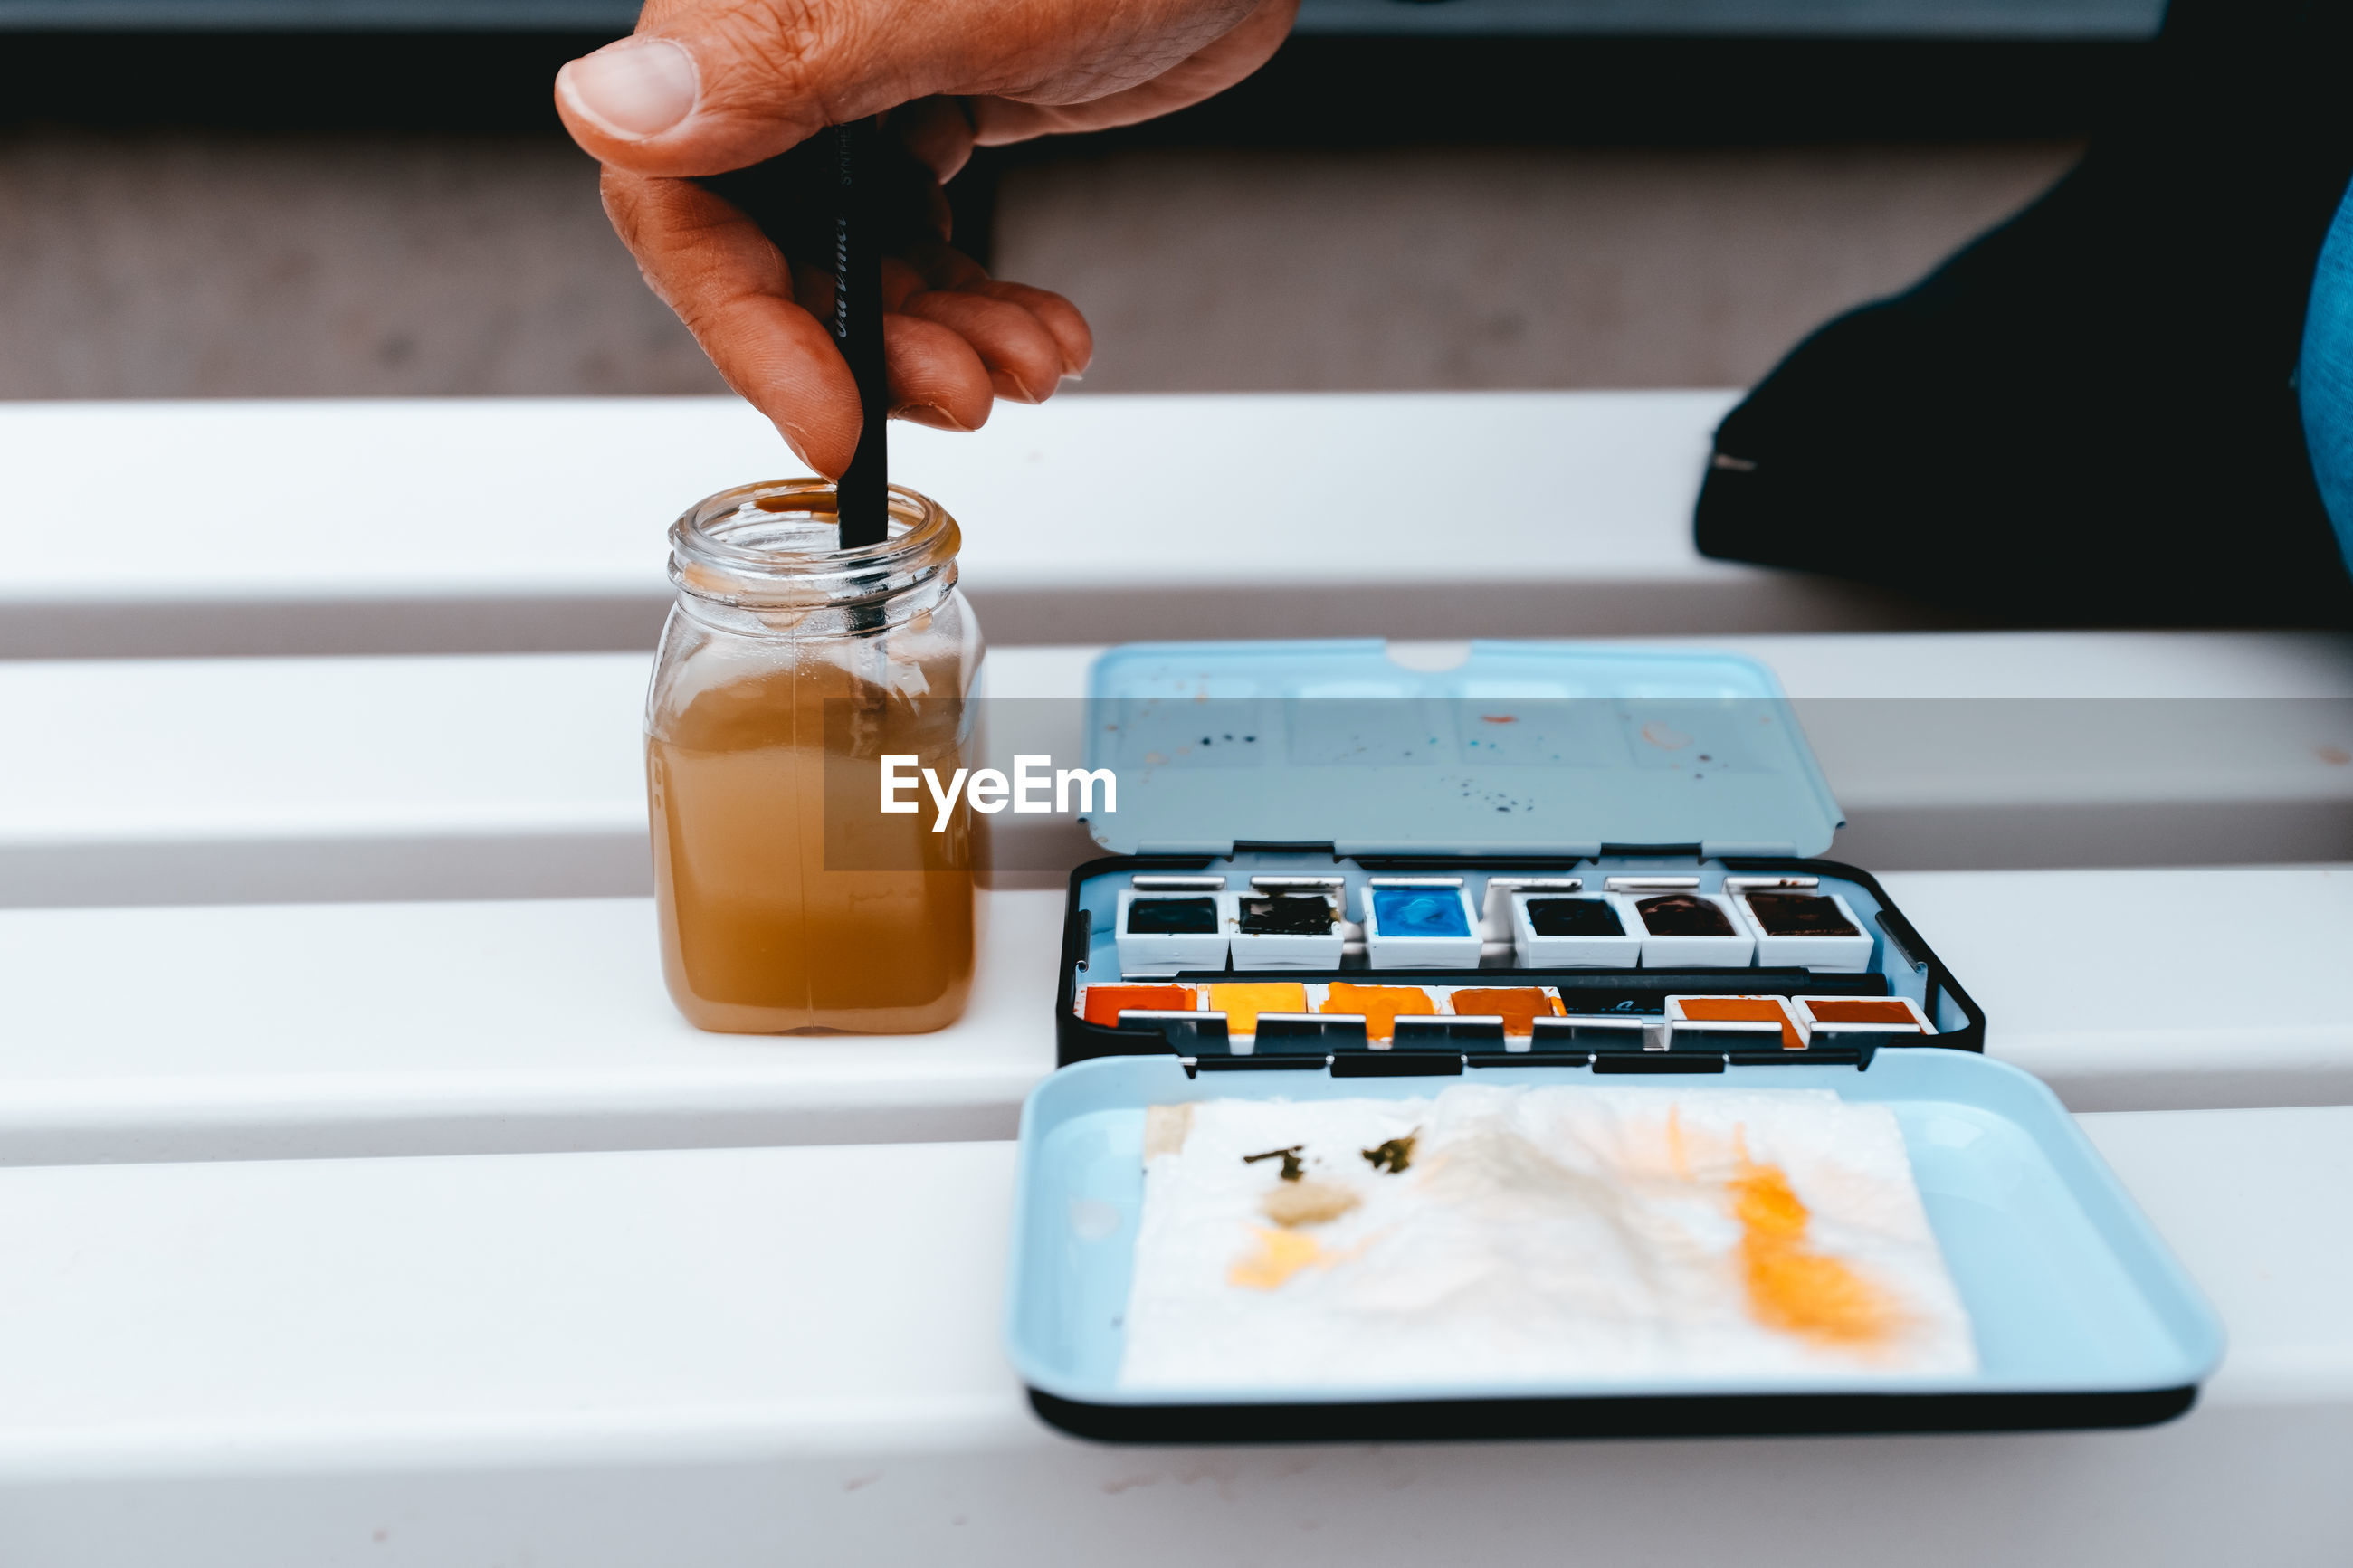 Cropped image of person with painting equipment on table